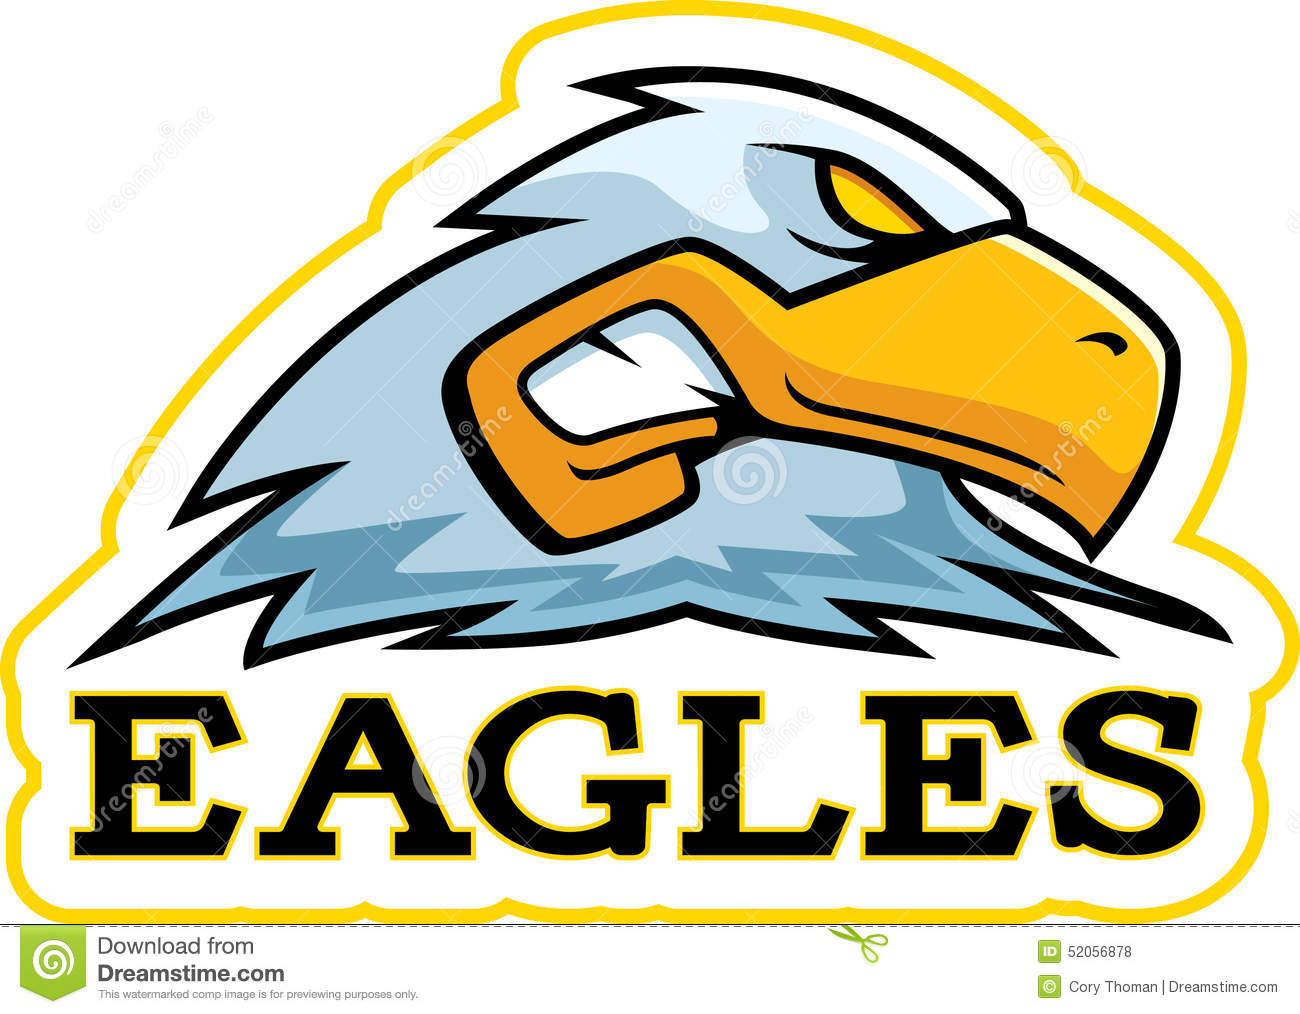 Cartoon Eagle Mascot Stock Vector - Image: 52056878